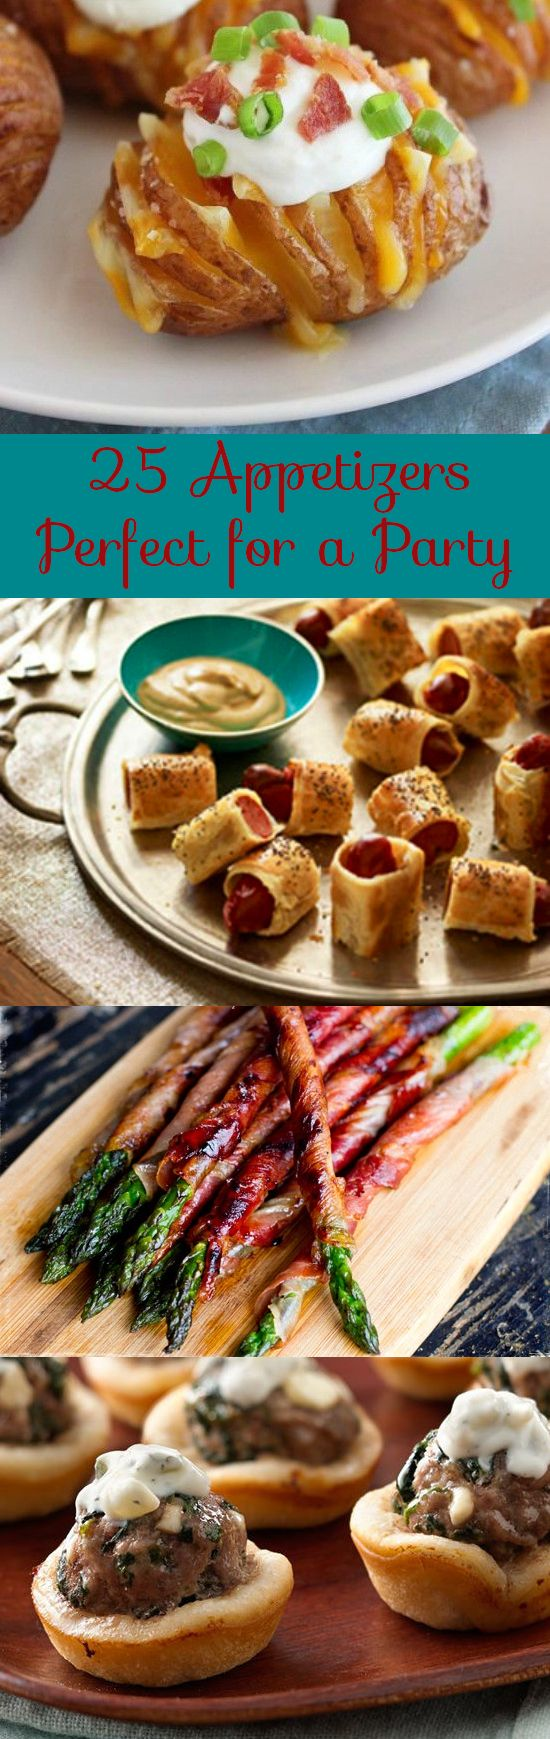 25 Appetizer Recipes Perfect for Parties | Looking for a new recipe to wow guests? Here's a collection of some of our favorites from prosciutto wrapped asparagus to potato bites to cranberry brie crostinis to chocolate dipped pretzel bites. There something for everyone! Click to view the collection and see the recipes.